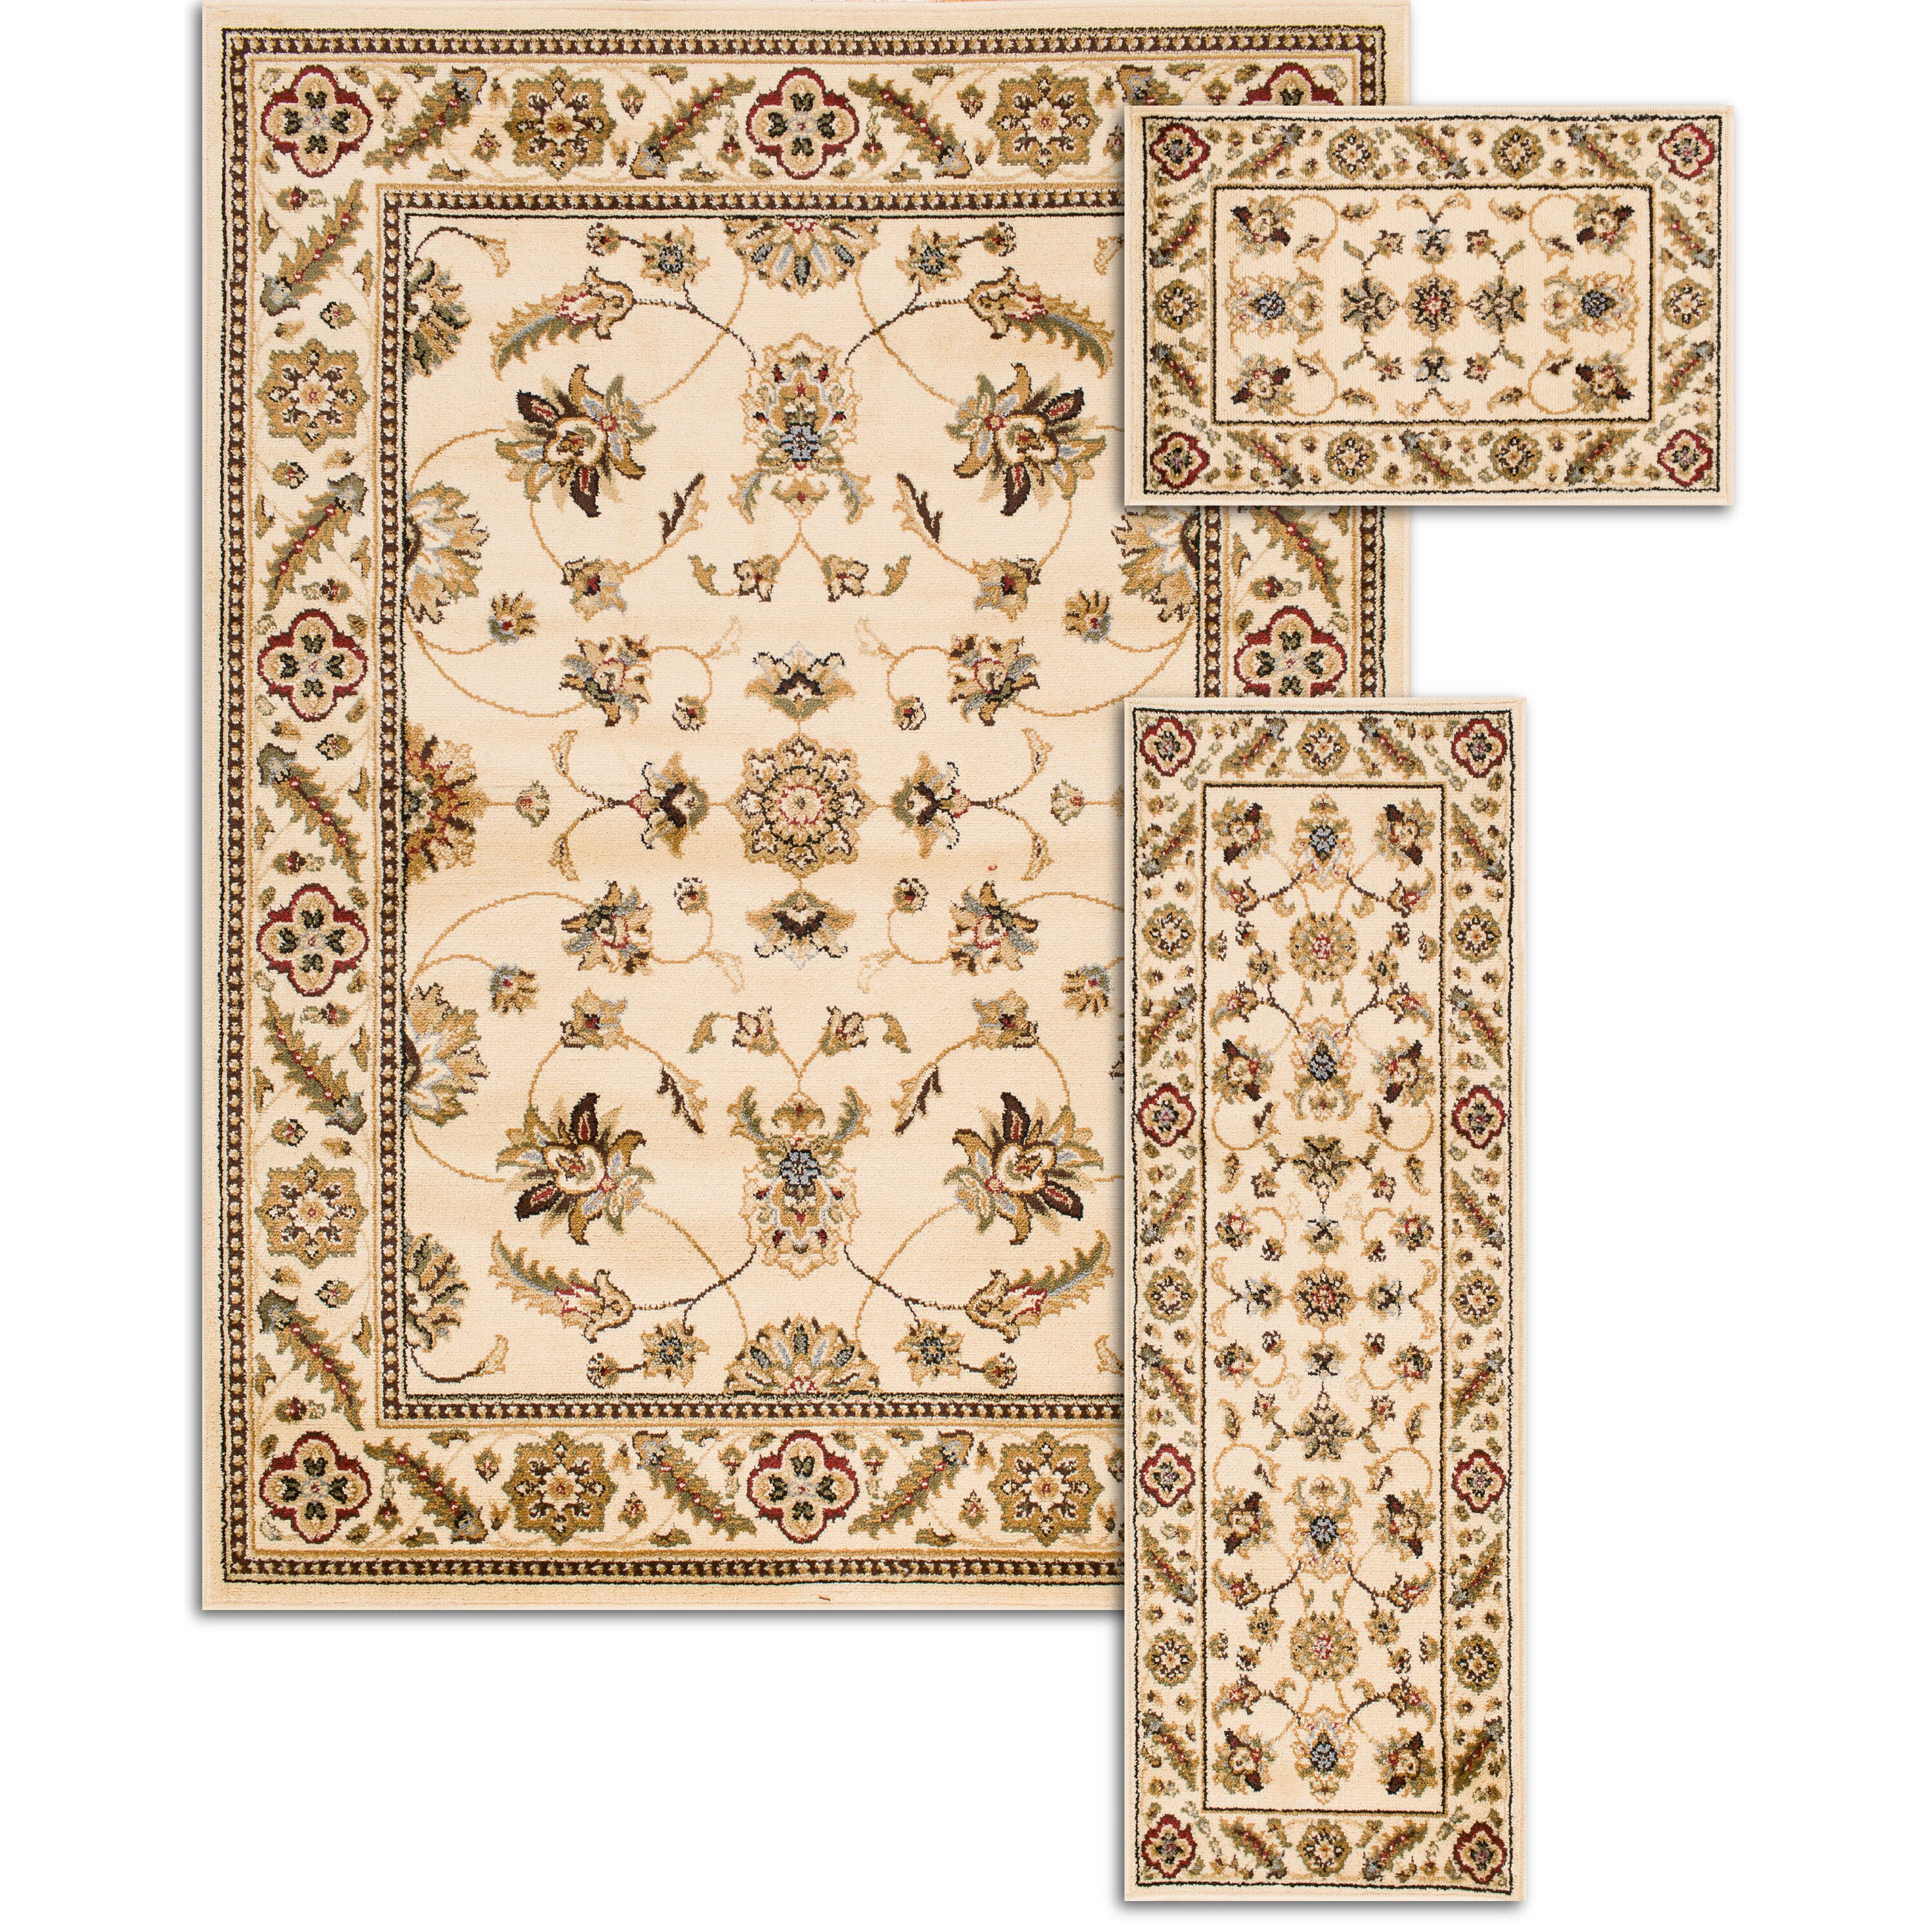 28 3 piece area rug sets sale 3 piece area rug sets sale ho